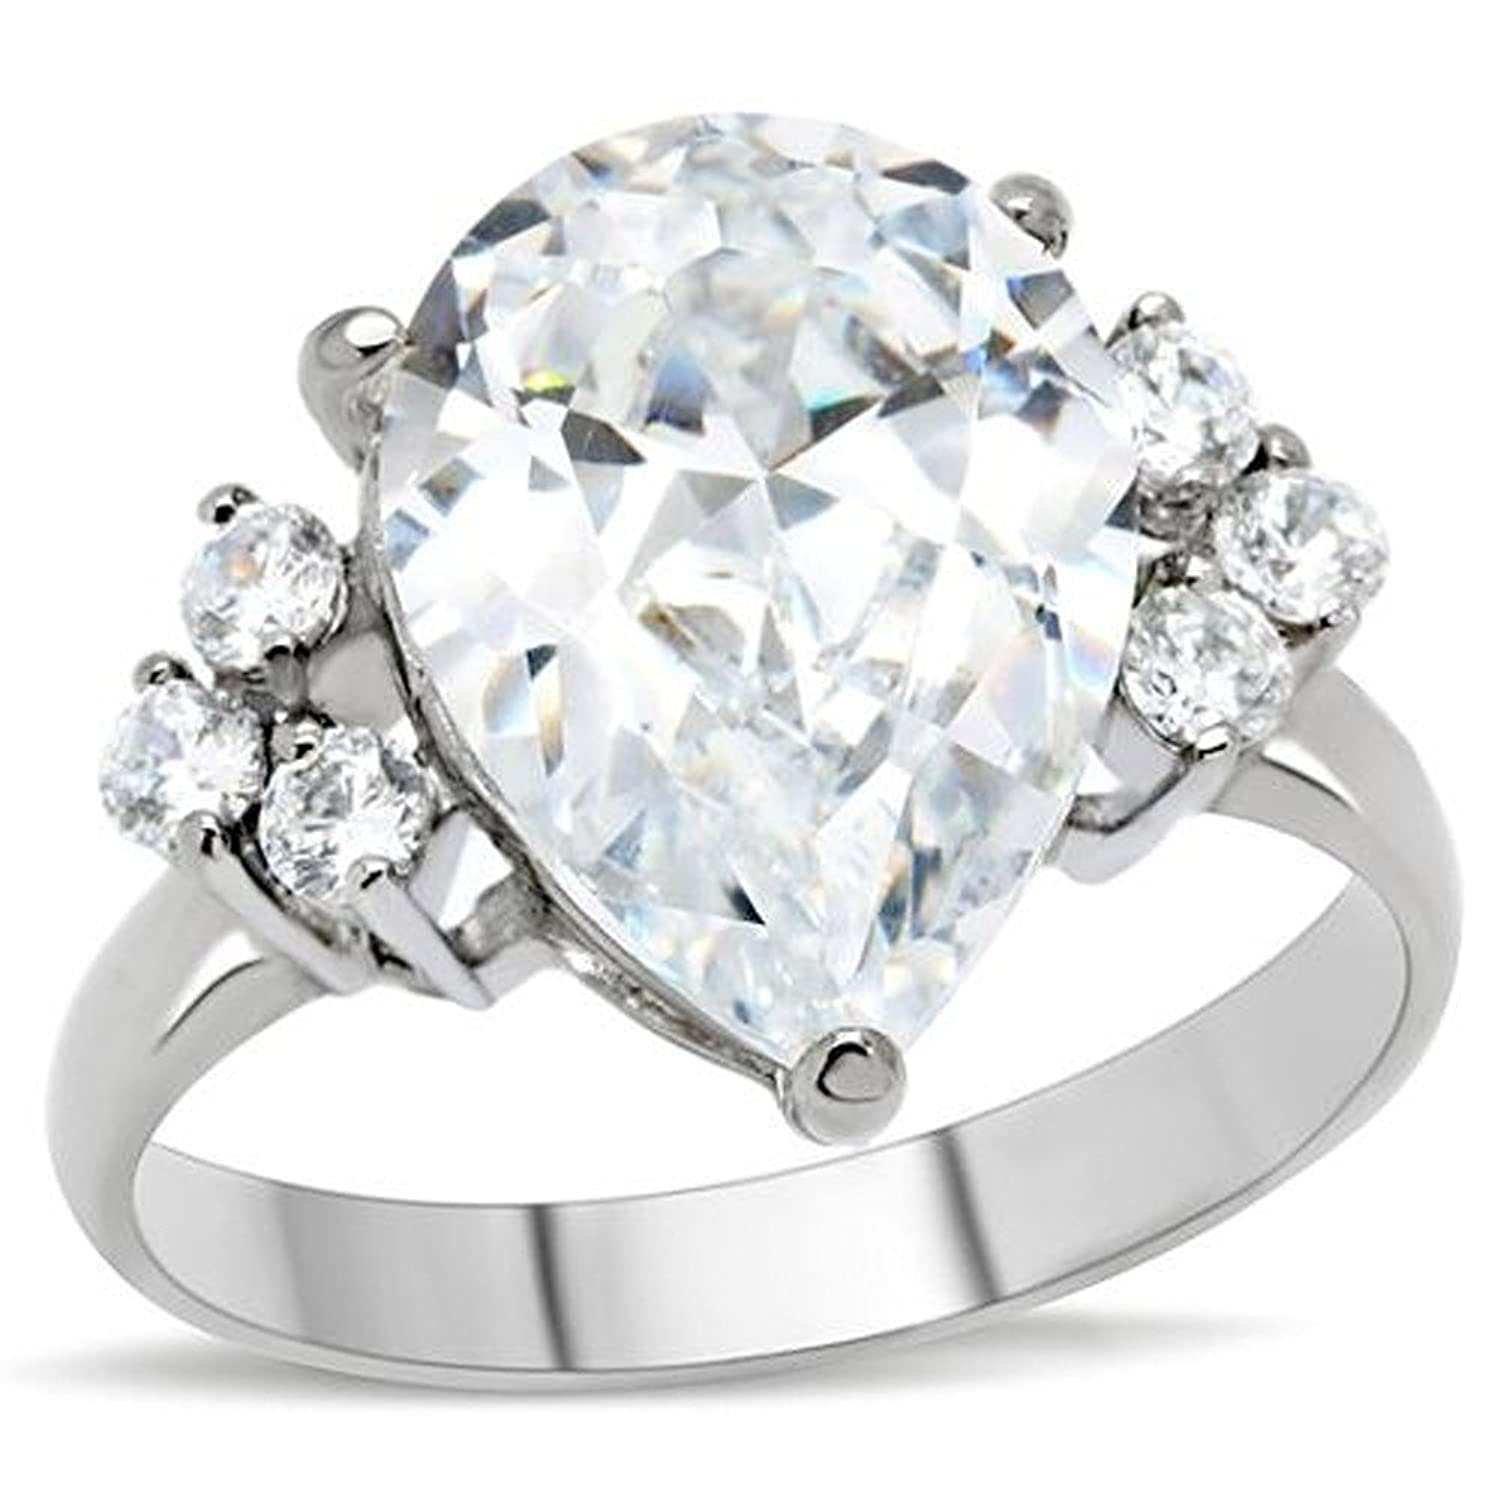 diamond big ring engagement youtube side oqeftmop jewellery corrals really lake single l vs round rings carat